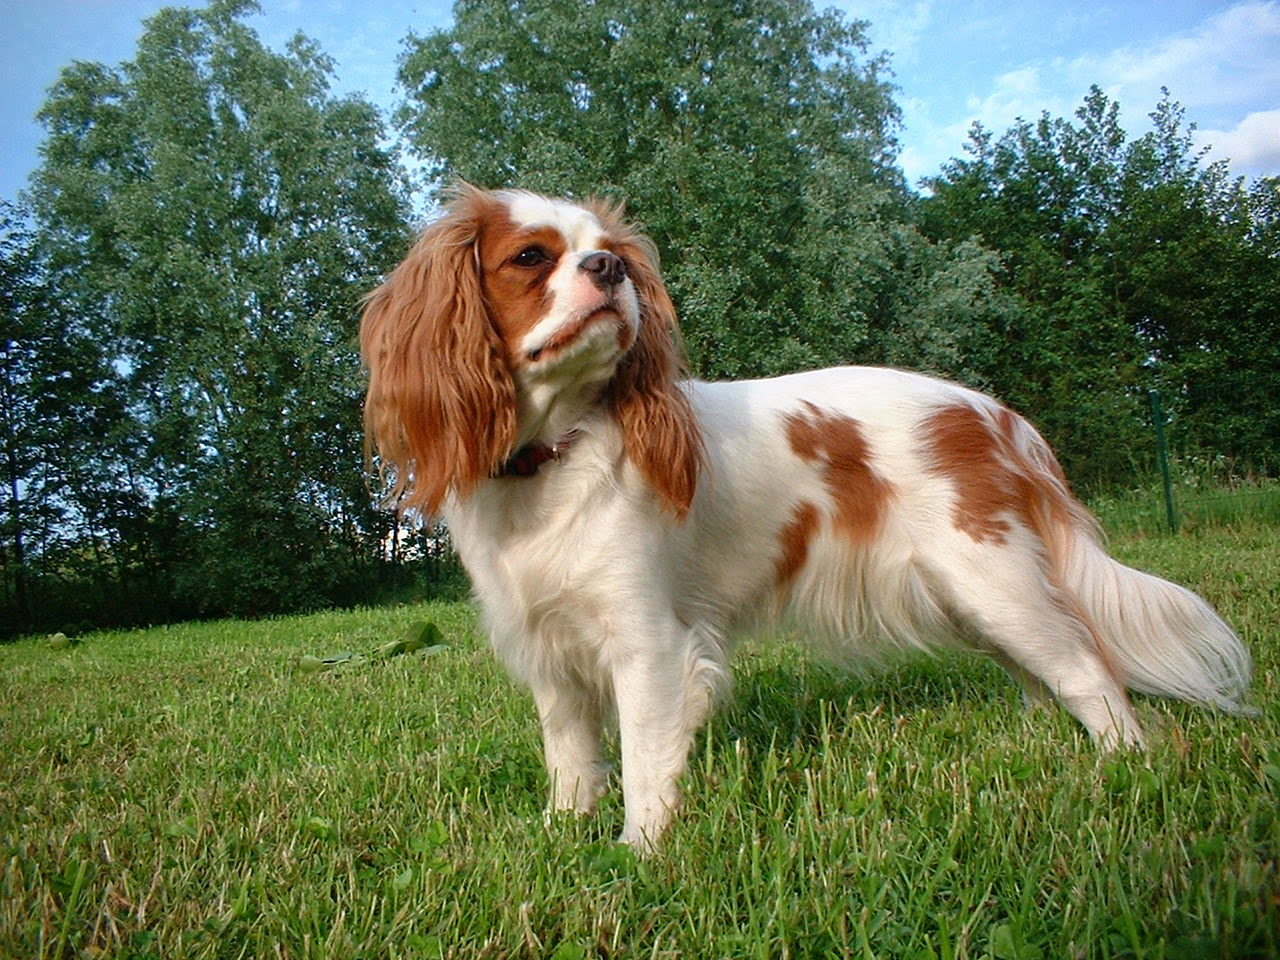 How To Groom My Dog How To Groom A Cavalier King Charles Spaniel